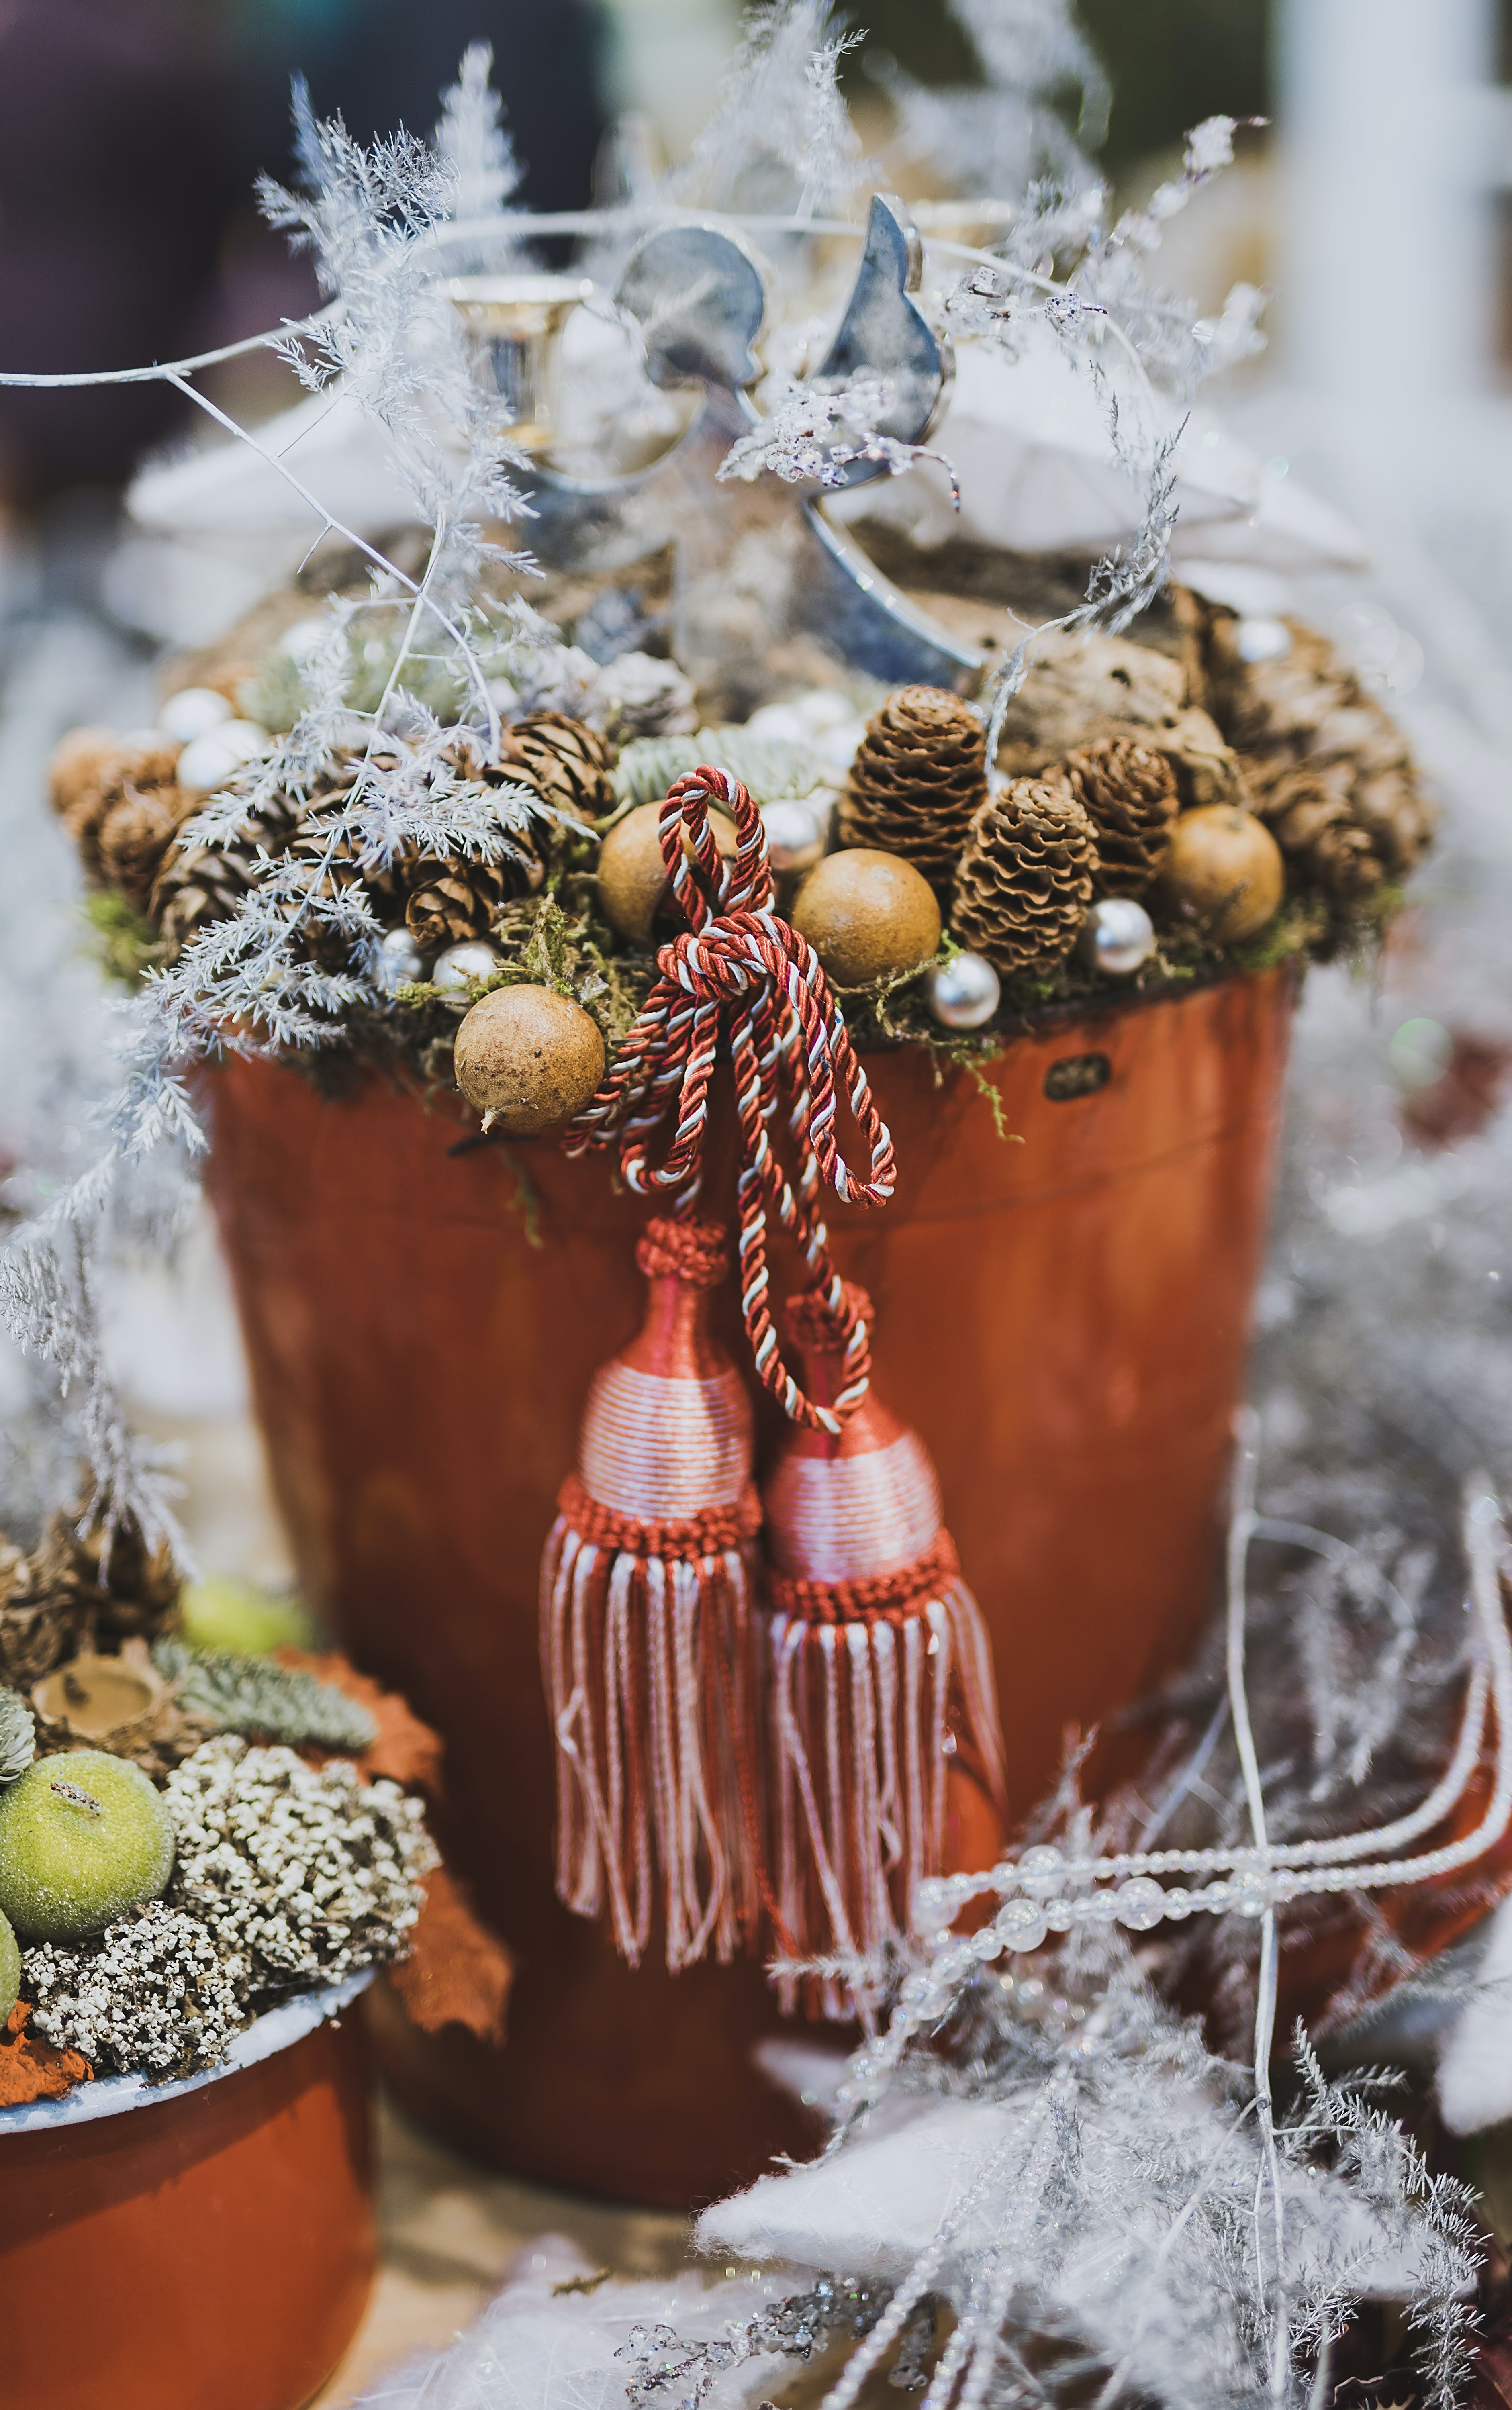 Close Up Photography of Pine Cone in Tassel Bucket